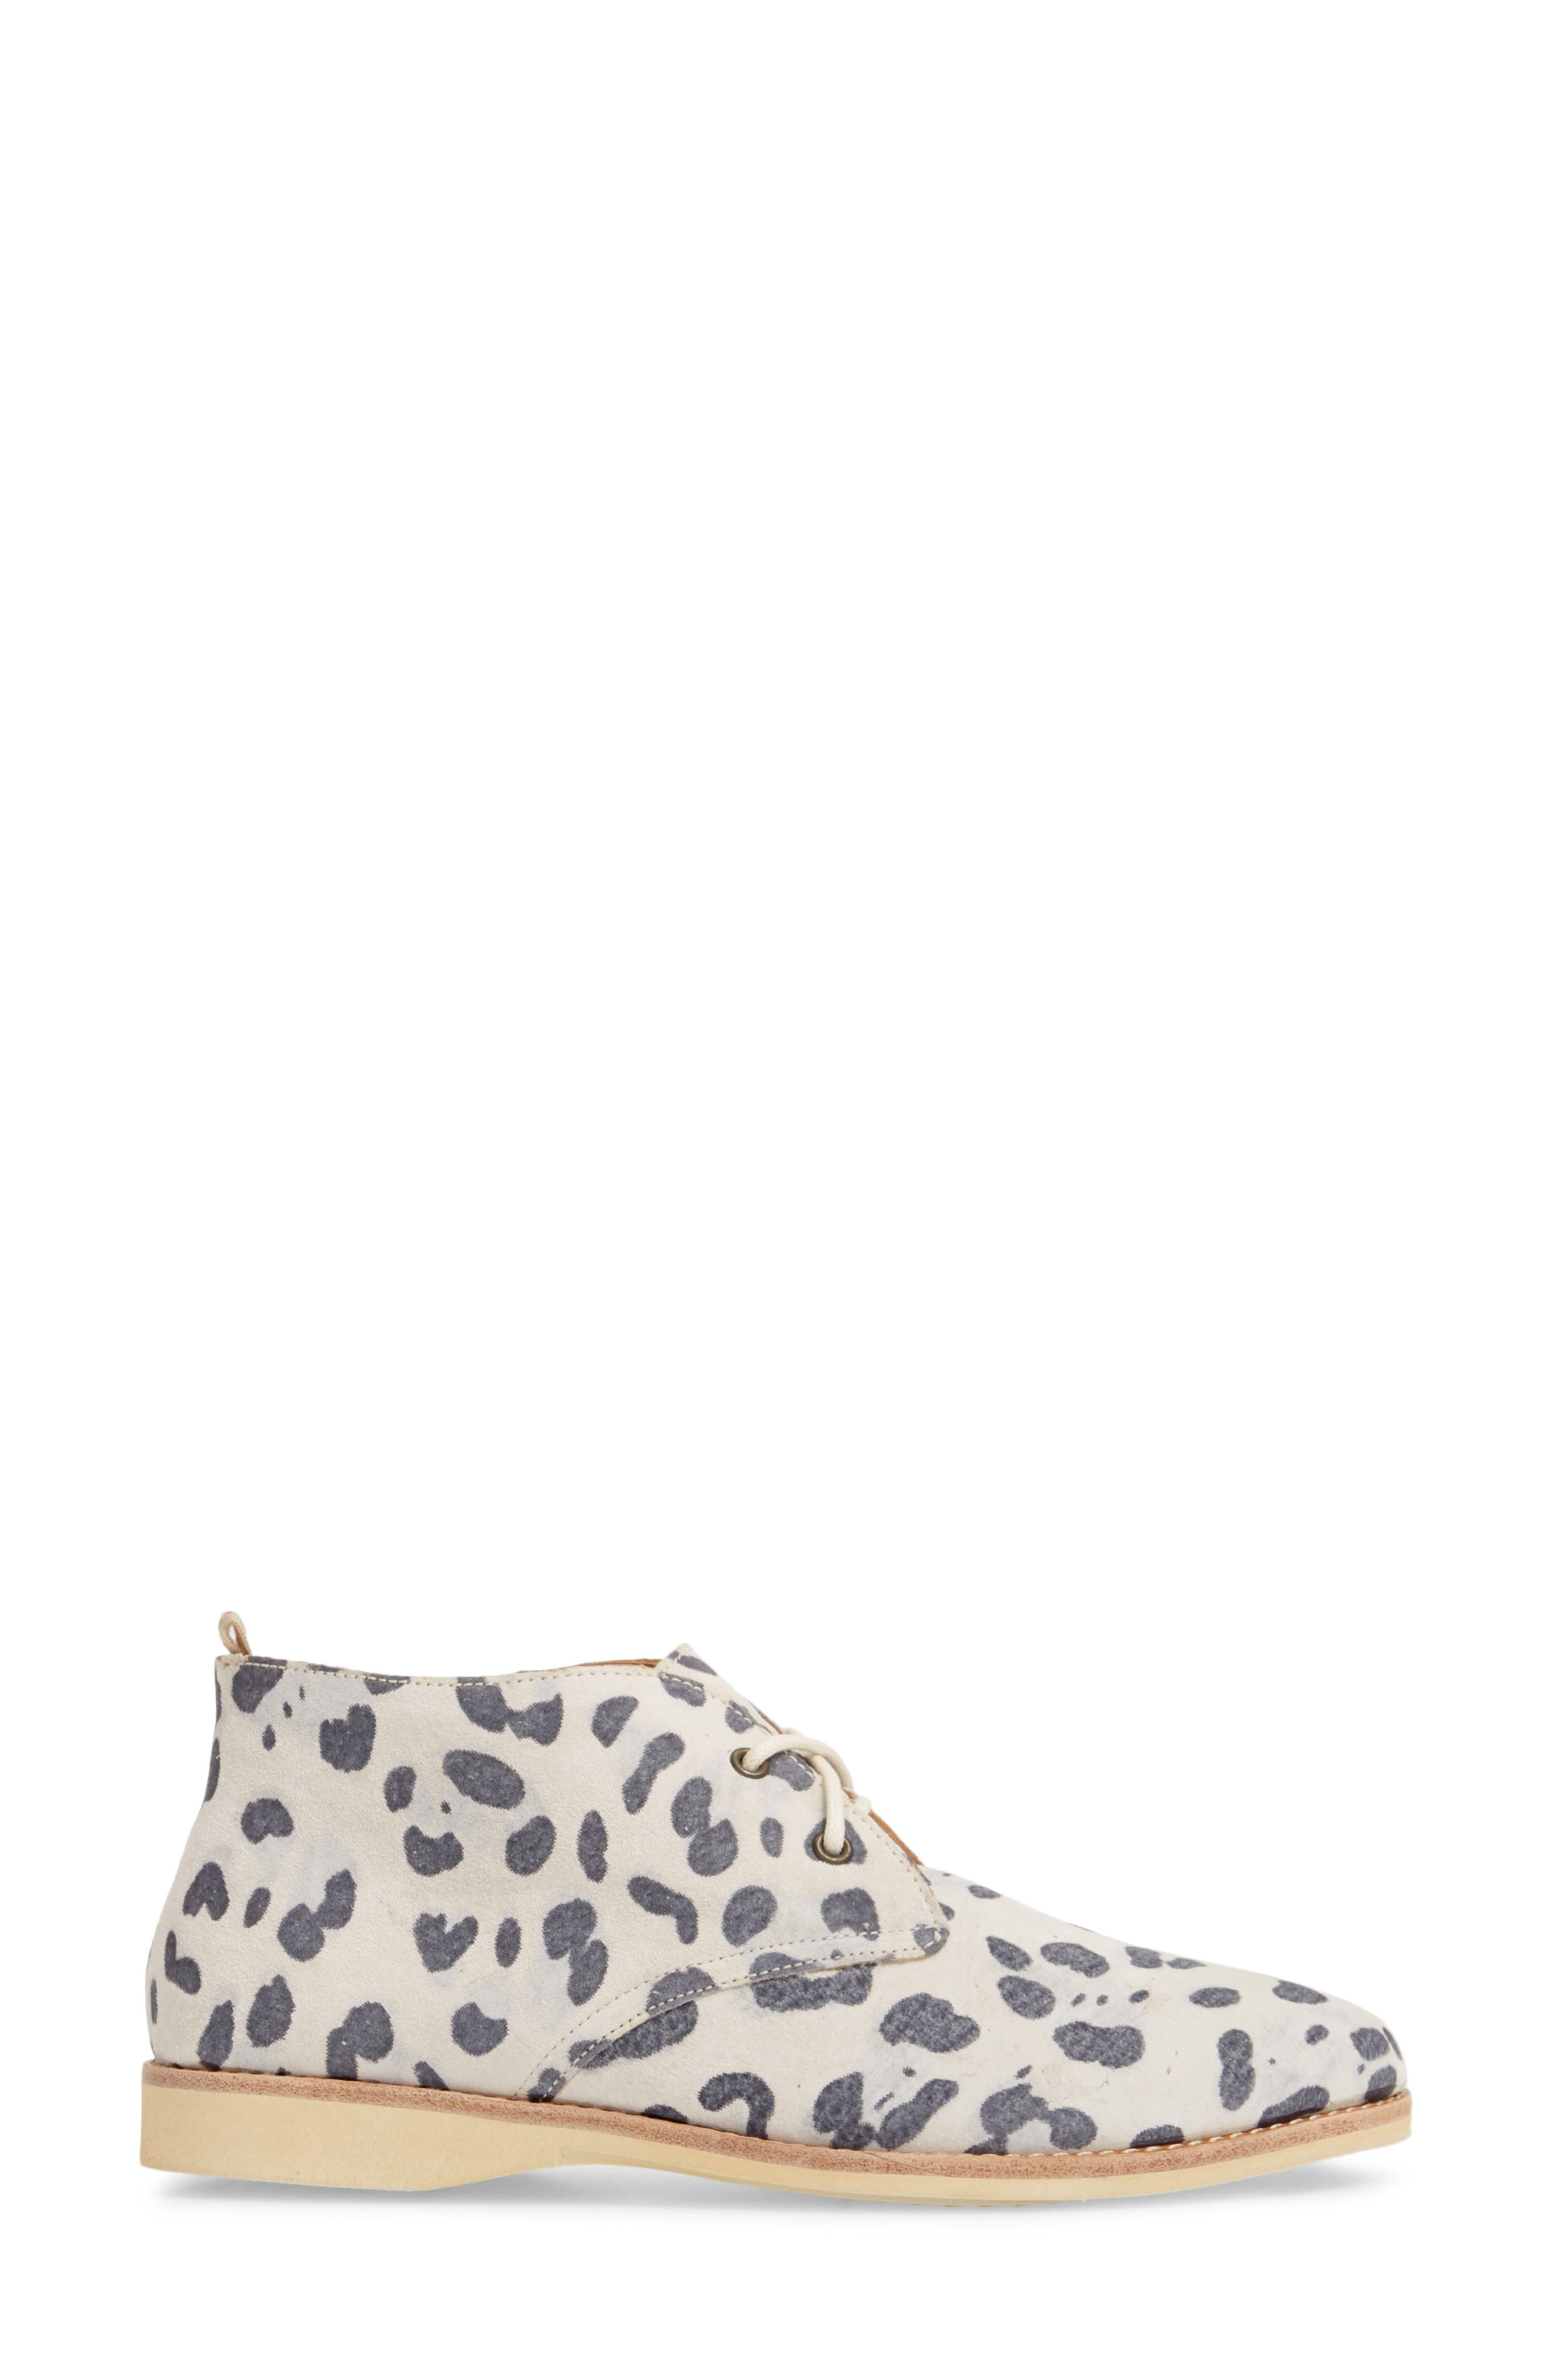 Chukka Bootie,                             Alternate thumbnail 4, color,                             Grey Leopard Suede